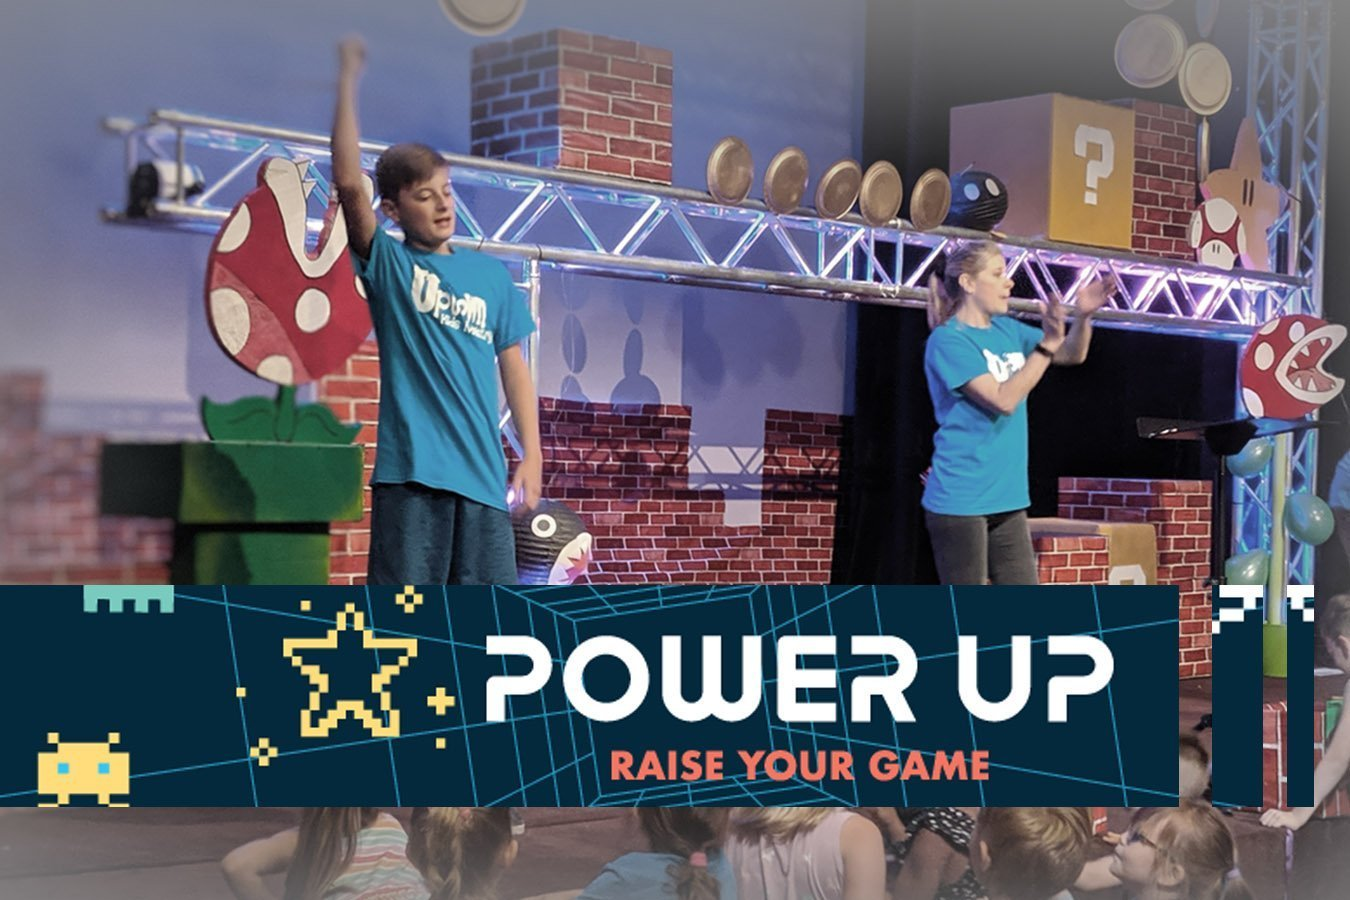 Power Up was a Blast!